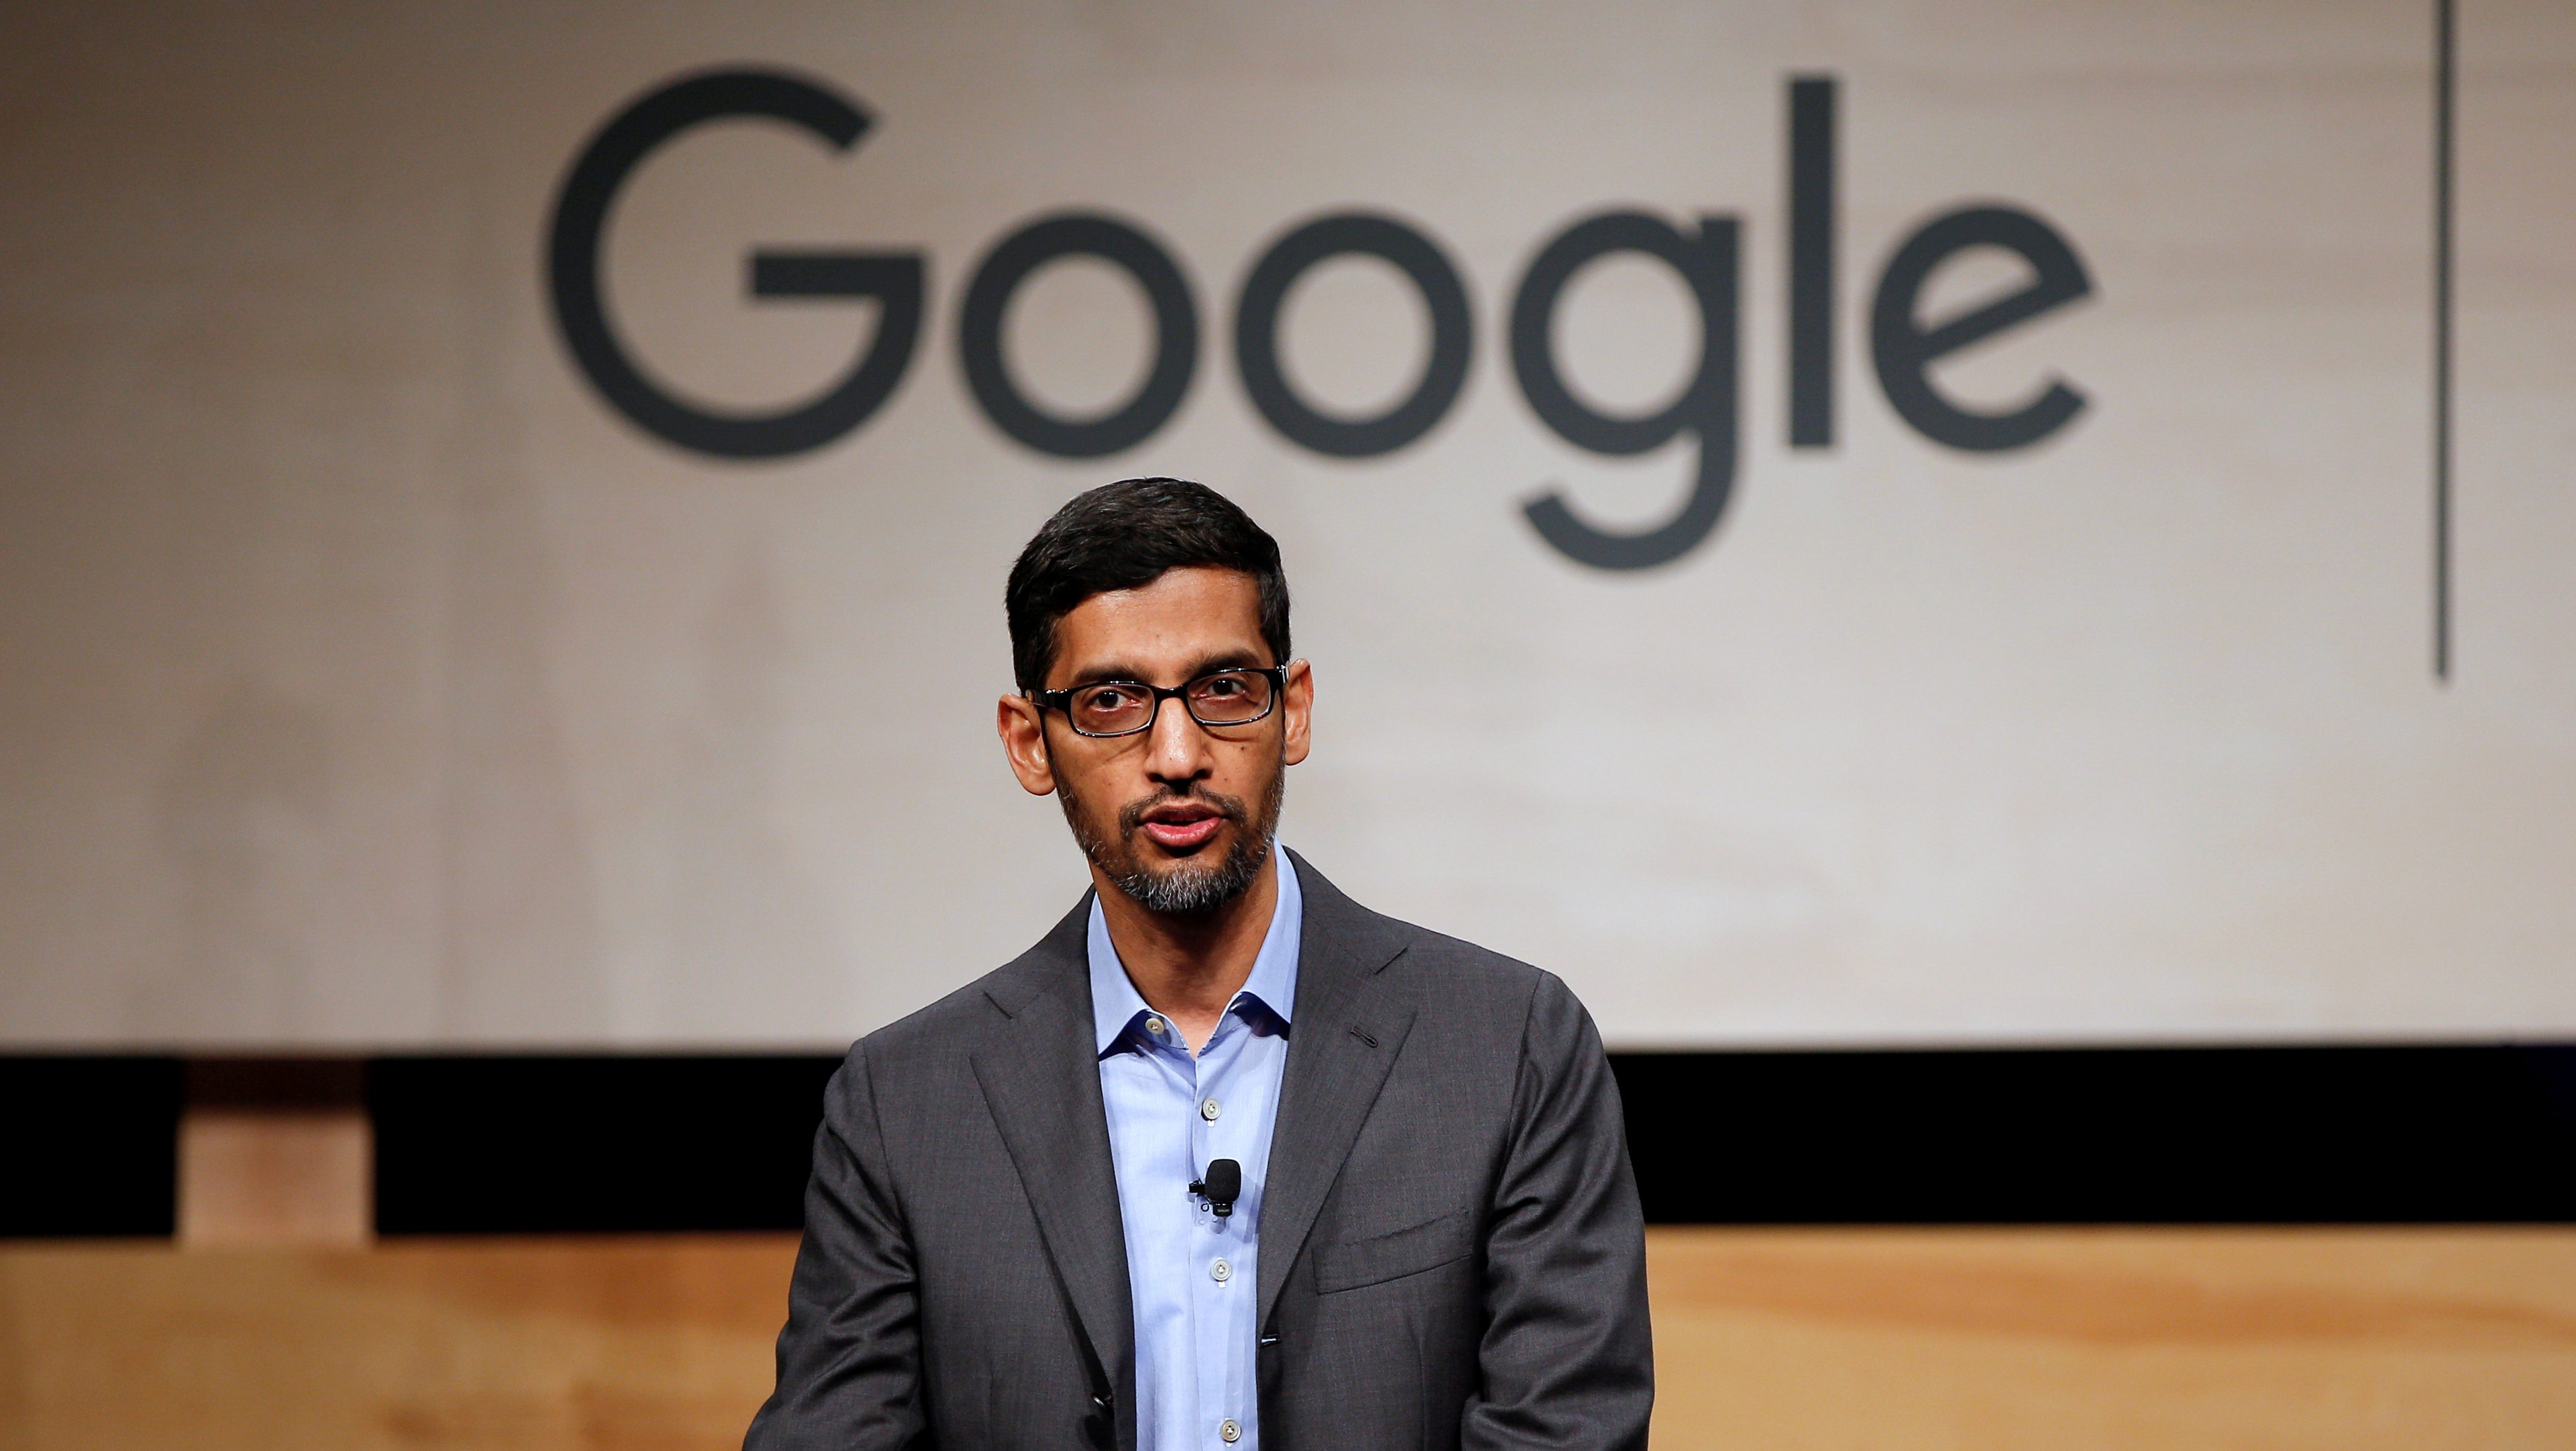 FILE PHOTO: Google CEO Pichai speaks at El Centro College in Dallas